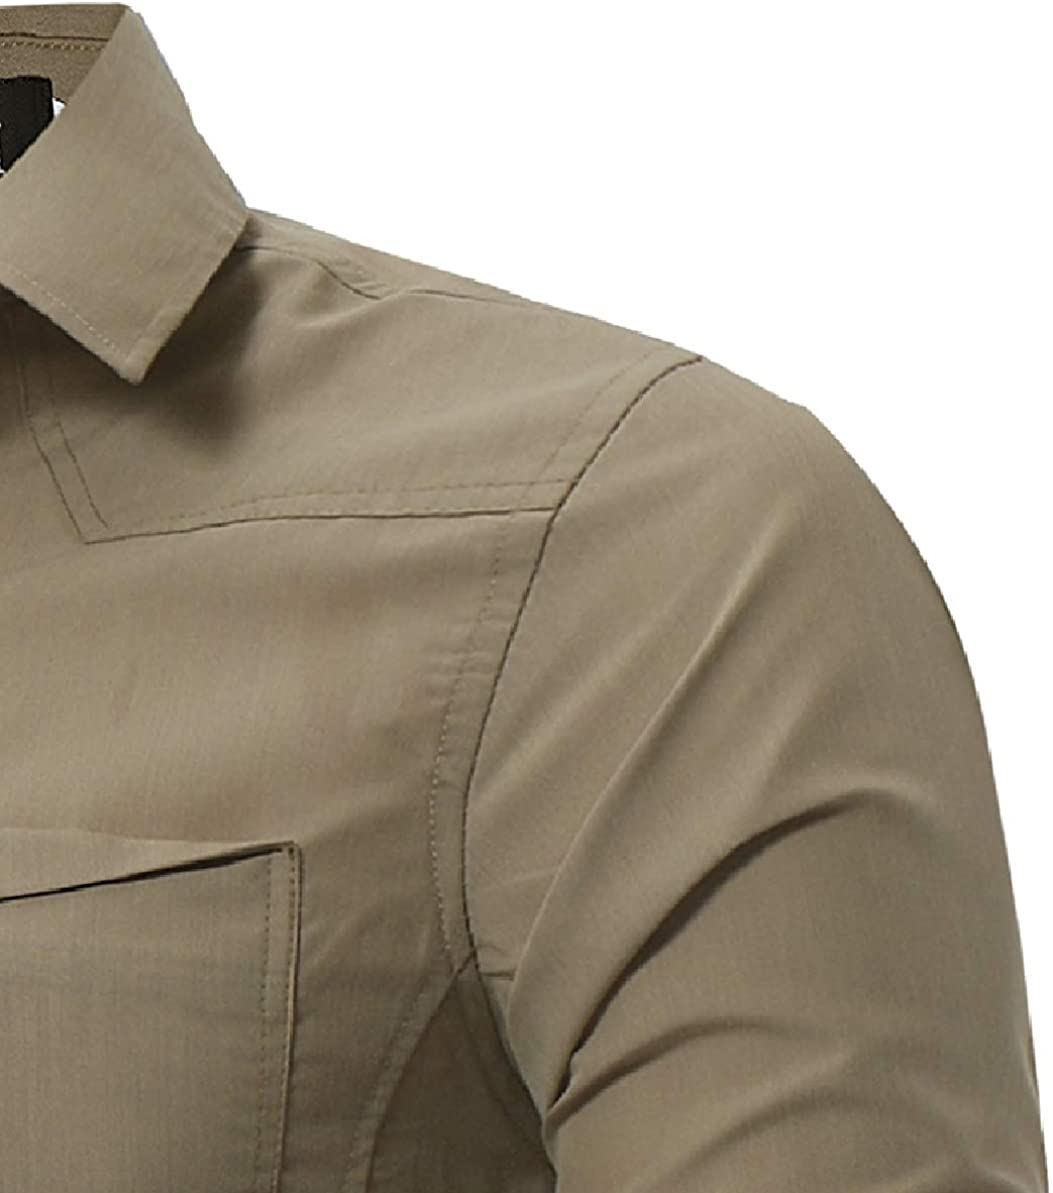 Zimaes-Men Office Comfort Solid Business Long-Sleeved Collared Dress Shirts